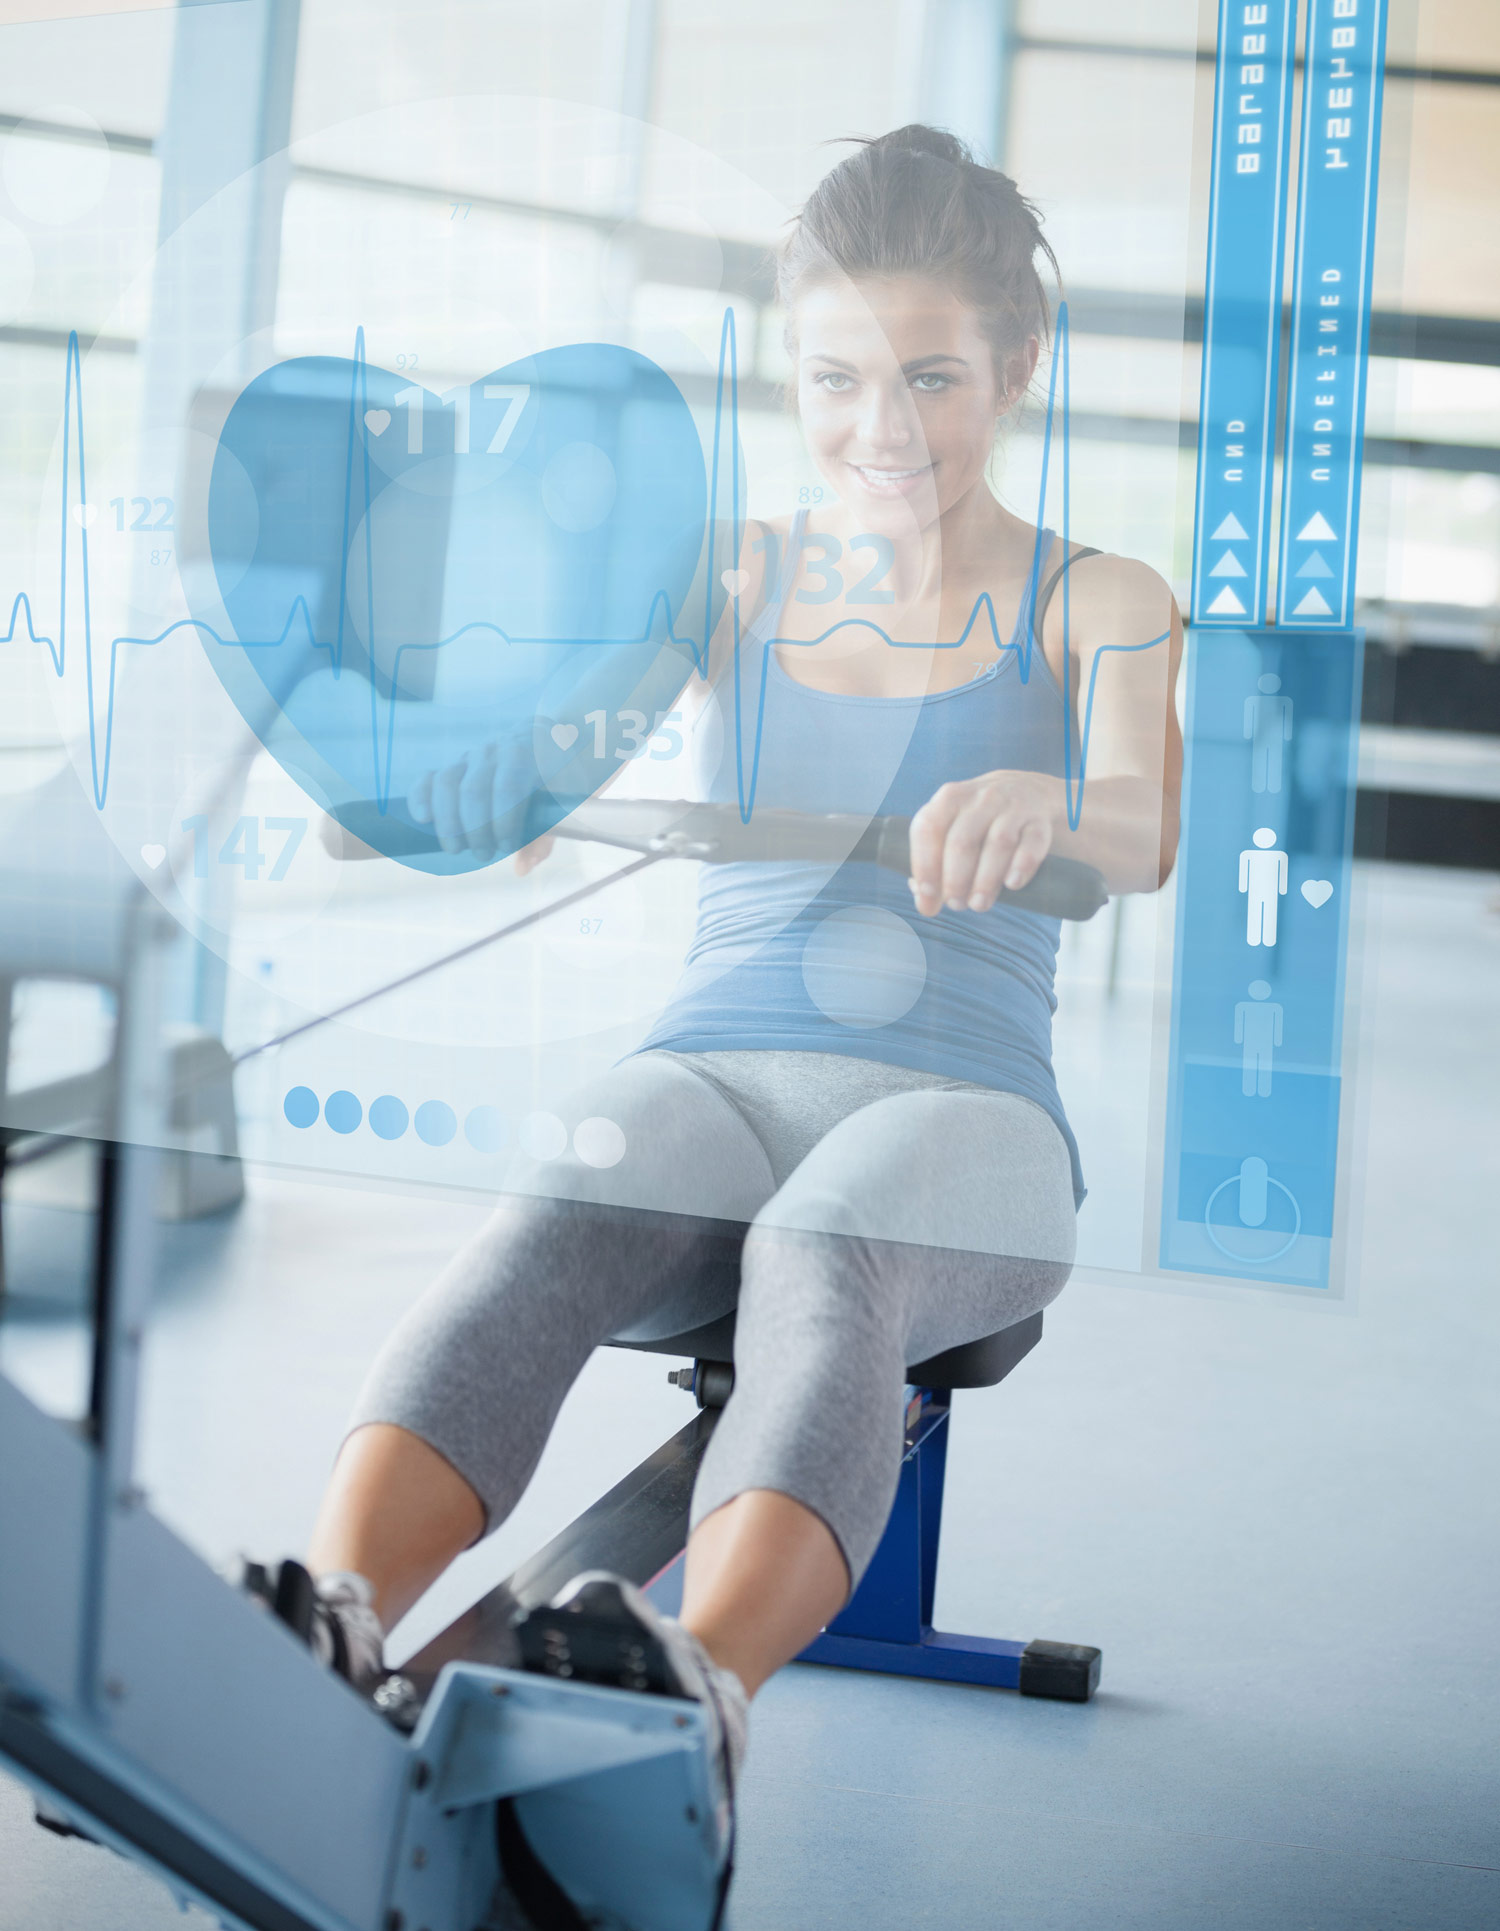 Young-girl-doing-rowing-machine-with-futuristic-interface.jpg